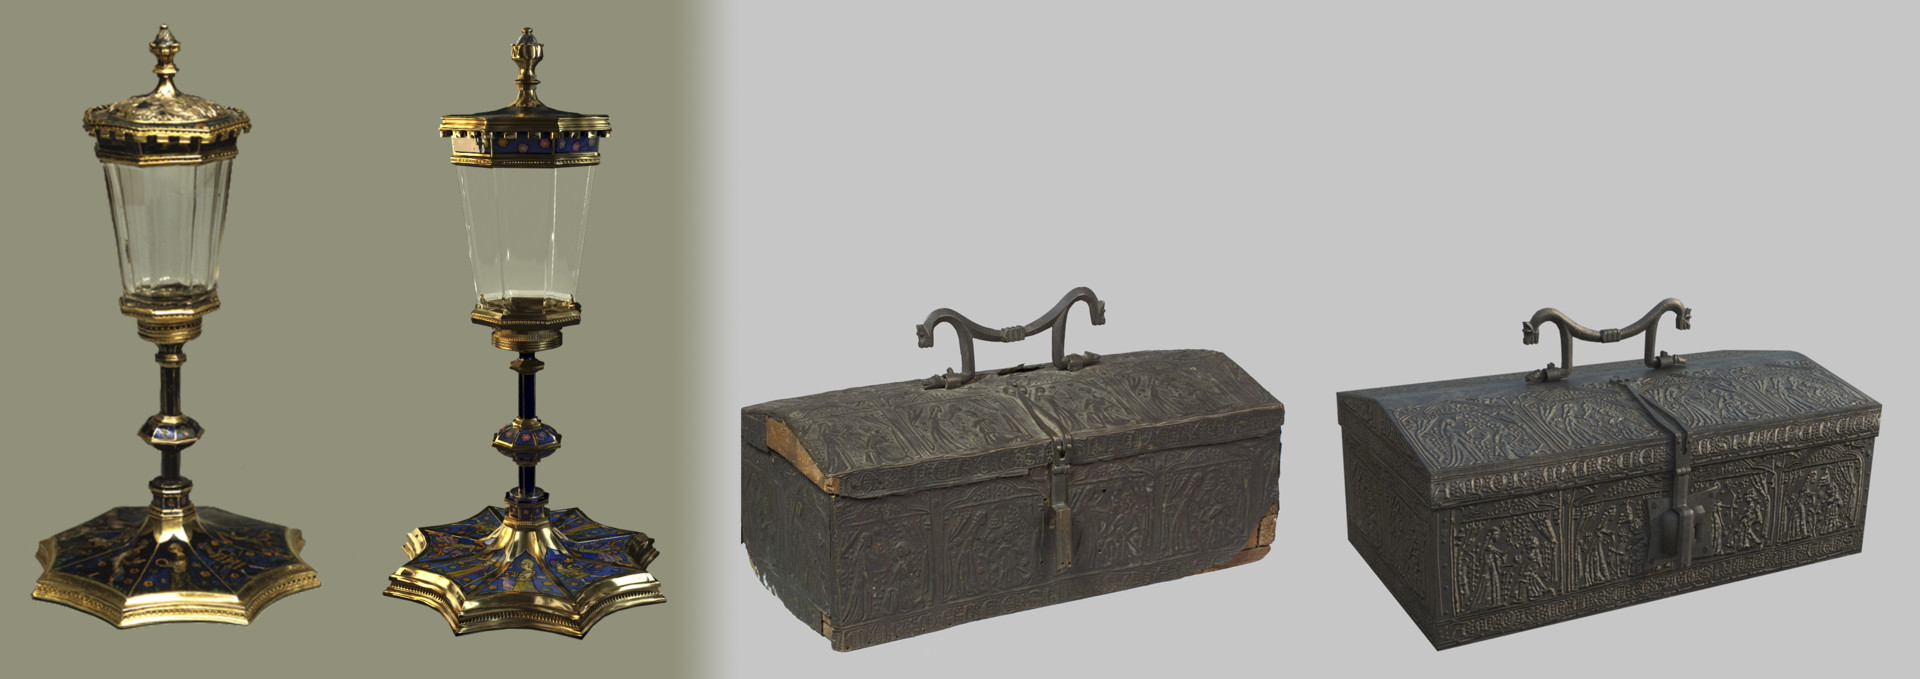 "Both medieval objects with their reference. In the case of the metal-chest, damaged areas were ""repaired"" according to reference and techniques of the time."